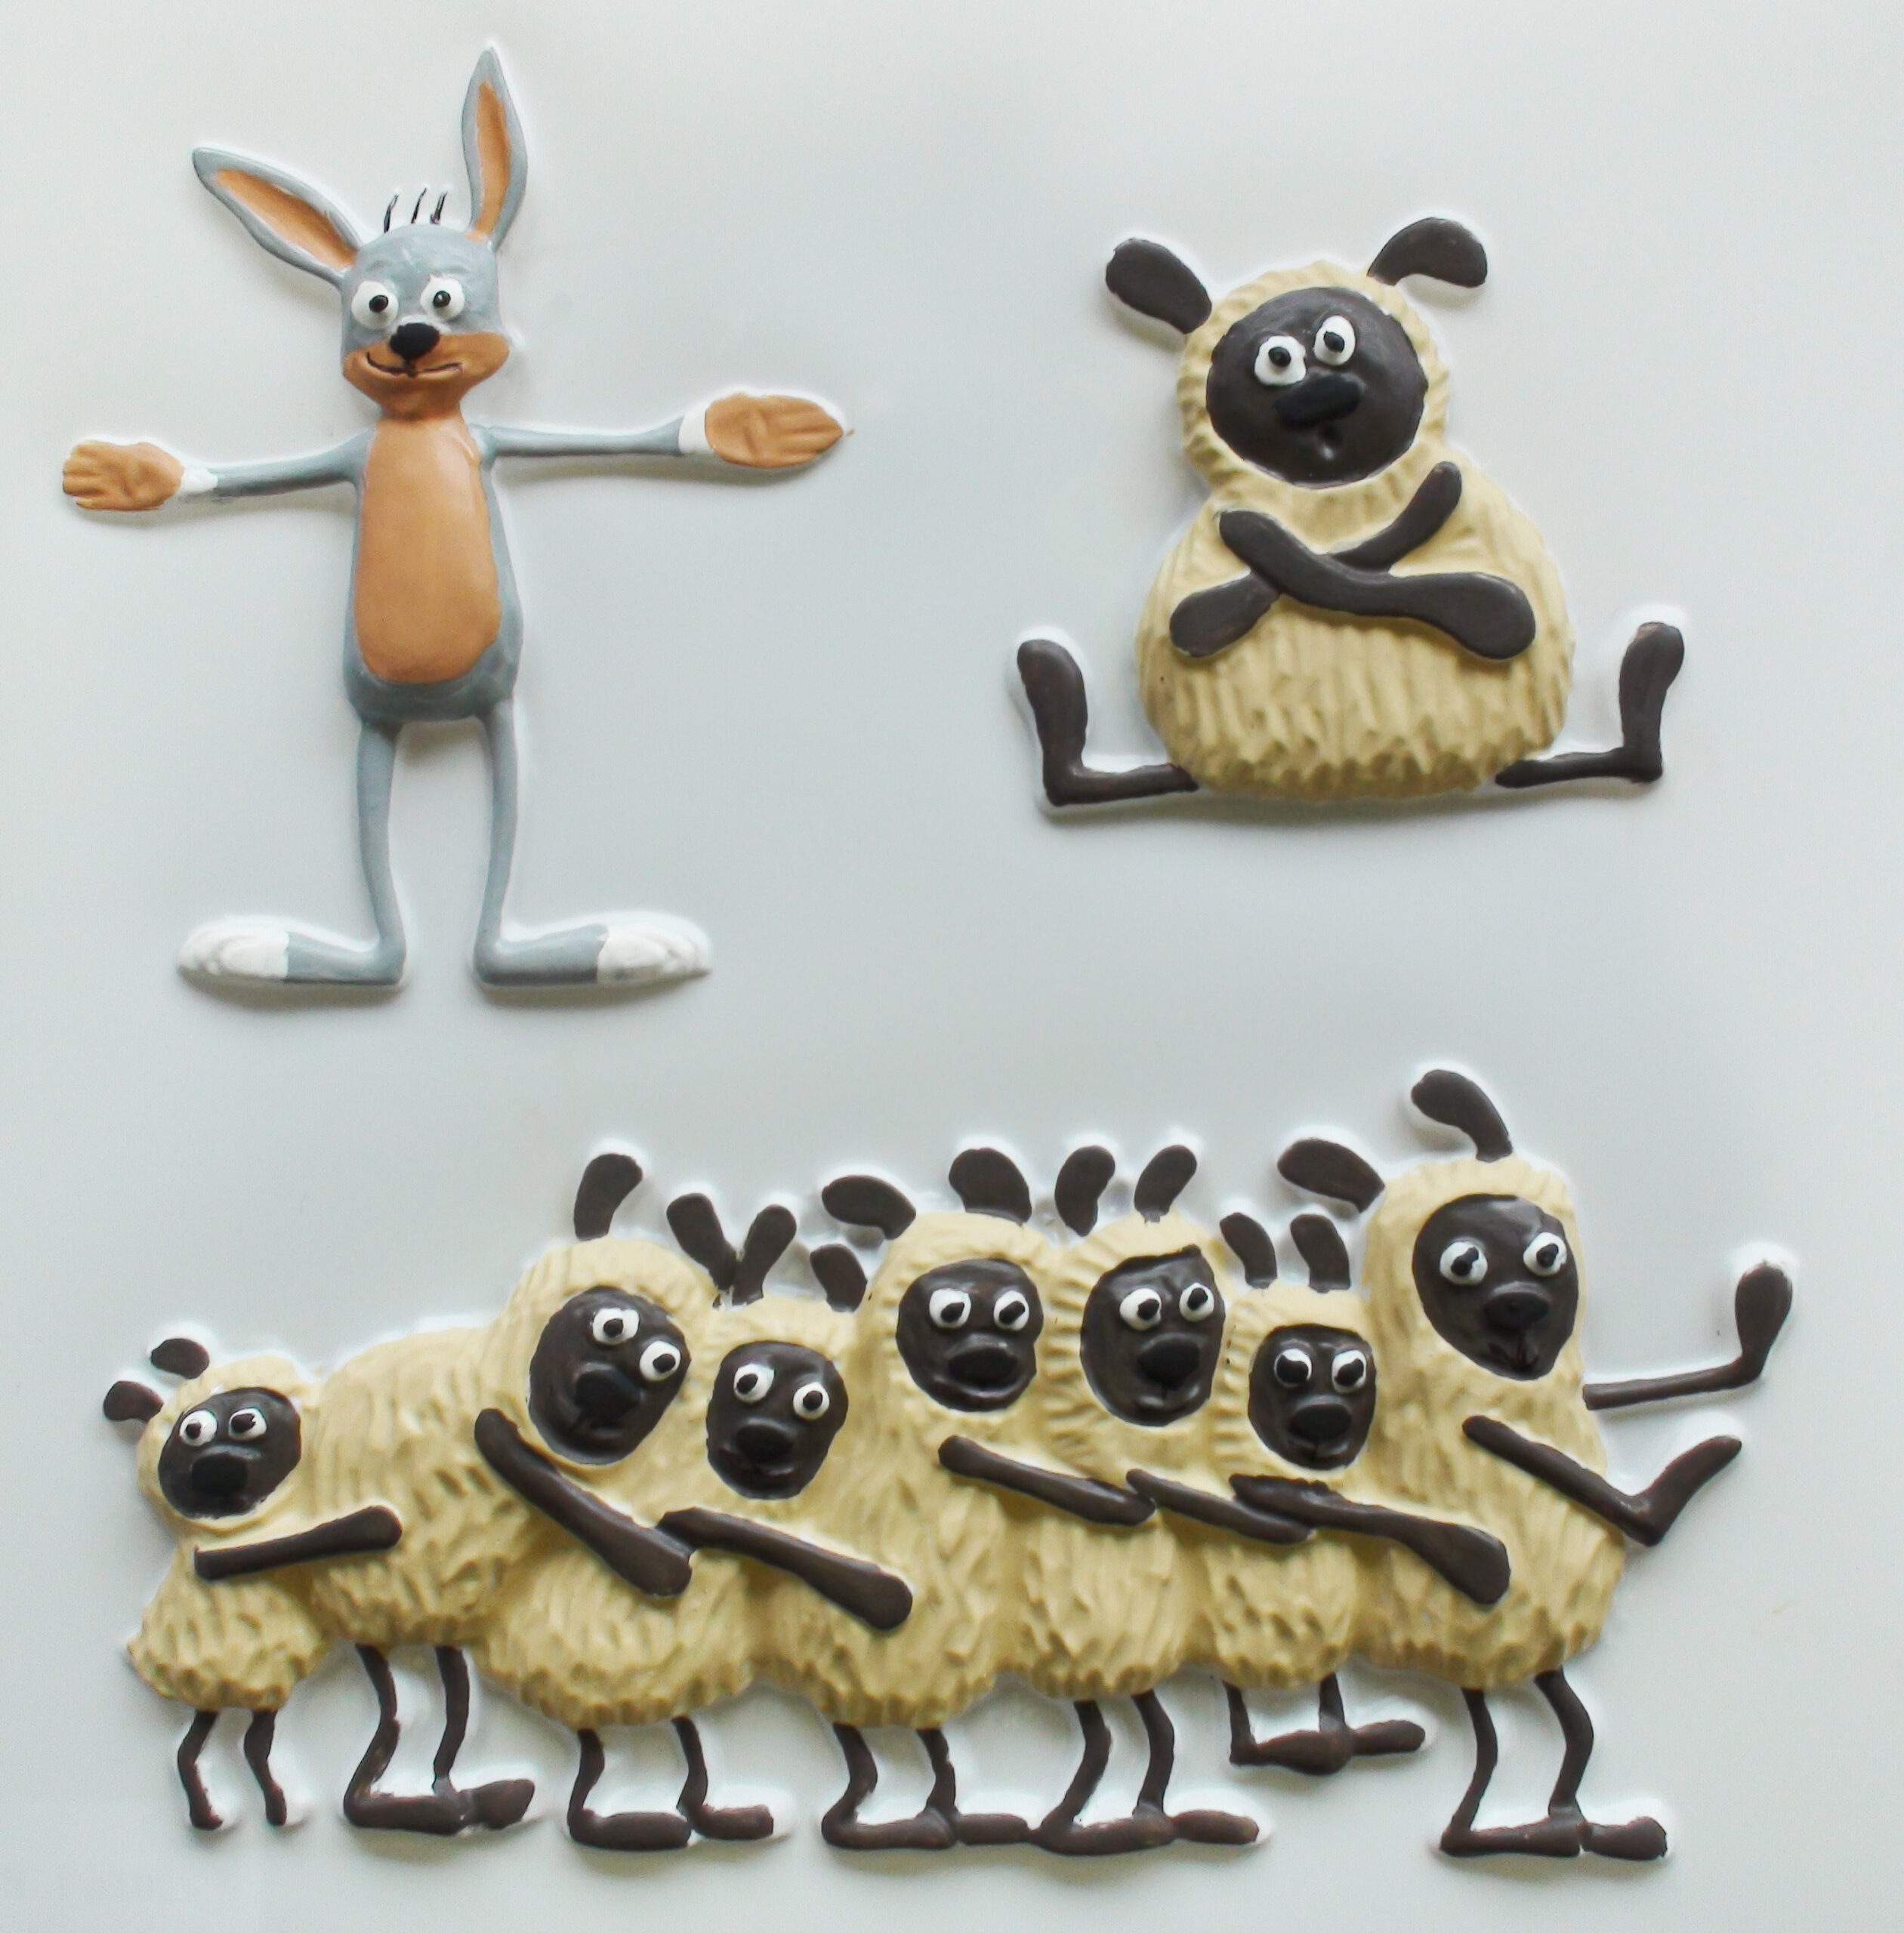 A bunny with open arms and sheep lined up one after the other, all on two legs.